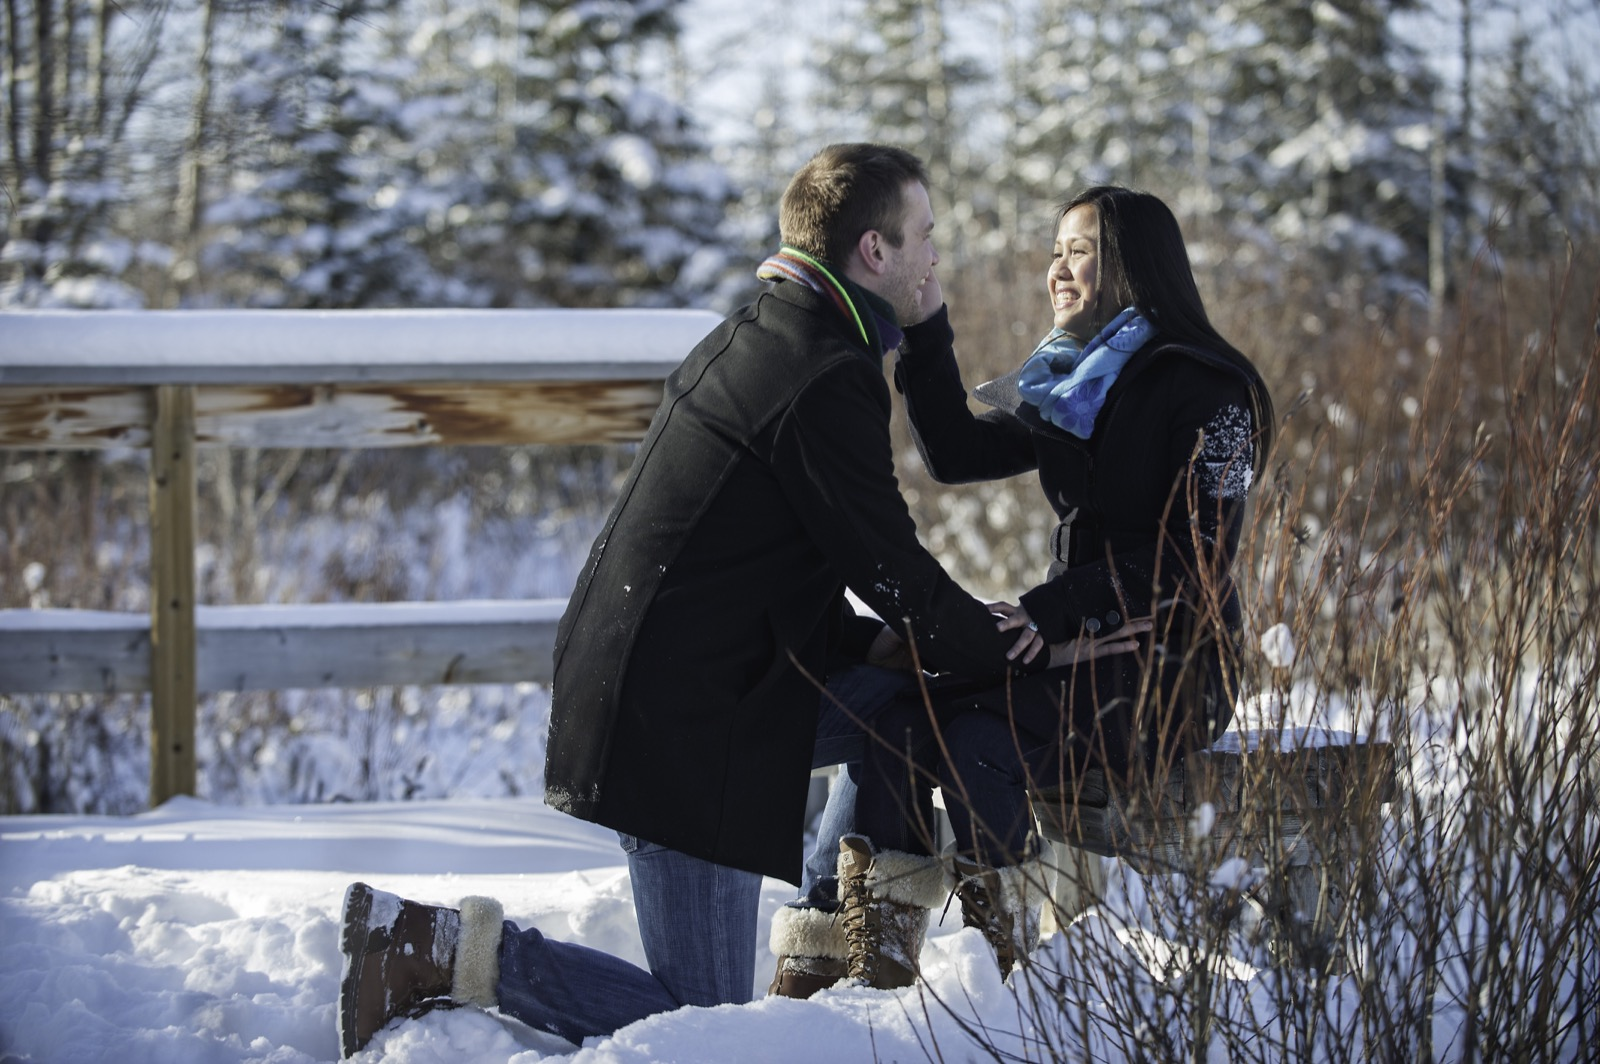 victoria-wedding-photographers-calgary-winter-engagement-proposal-19.jpg